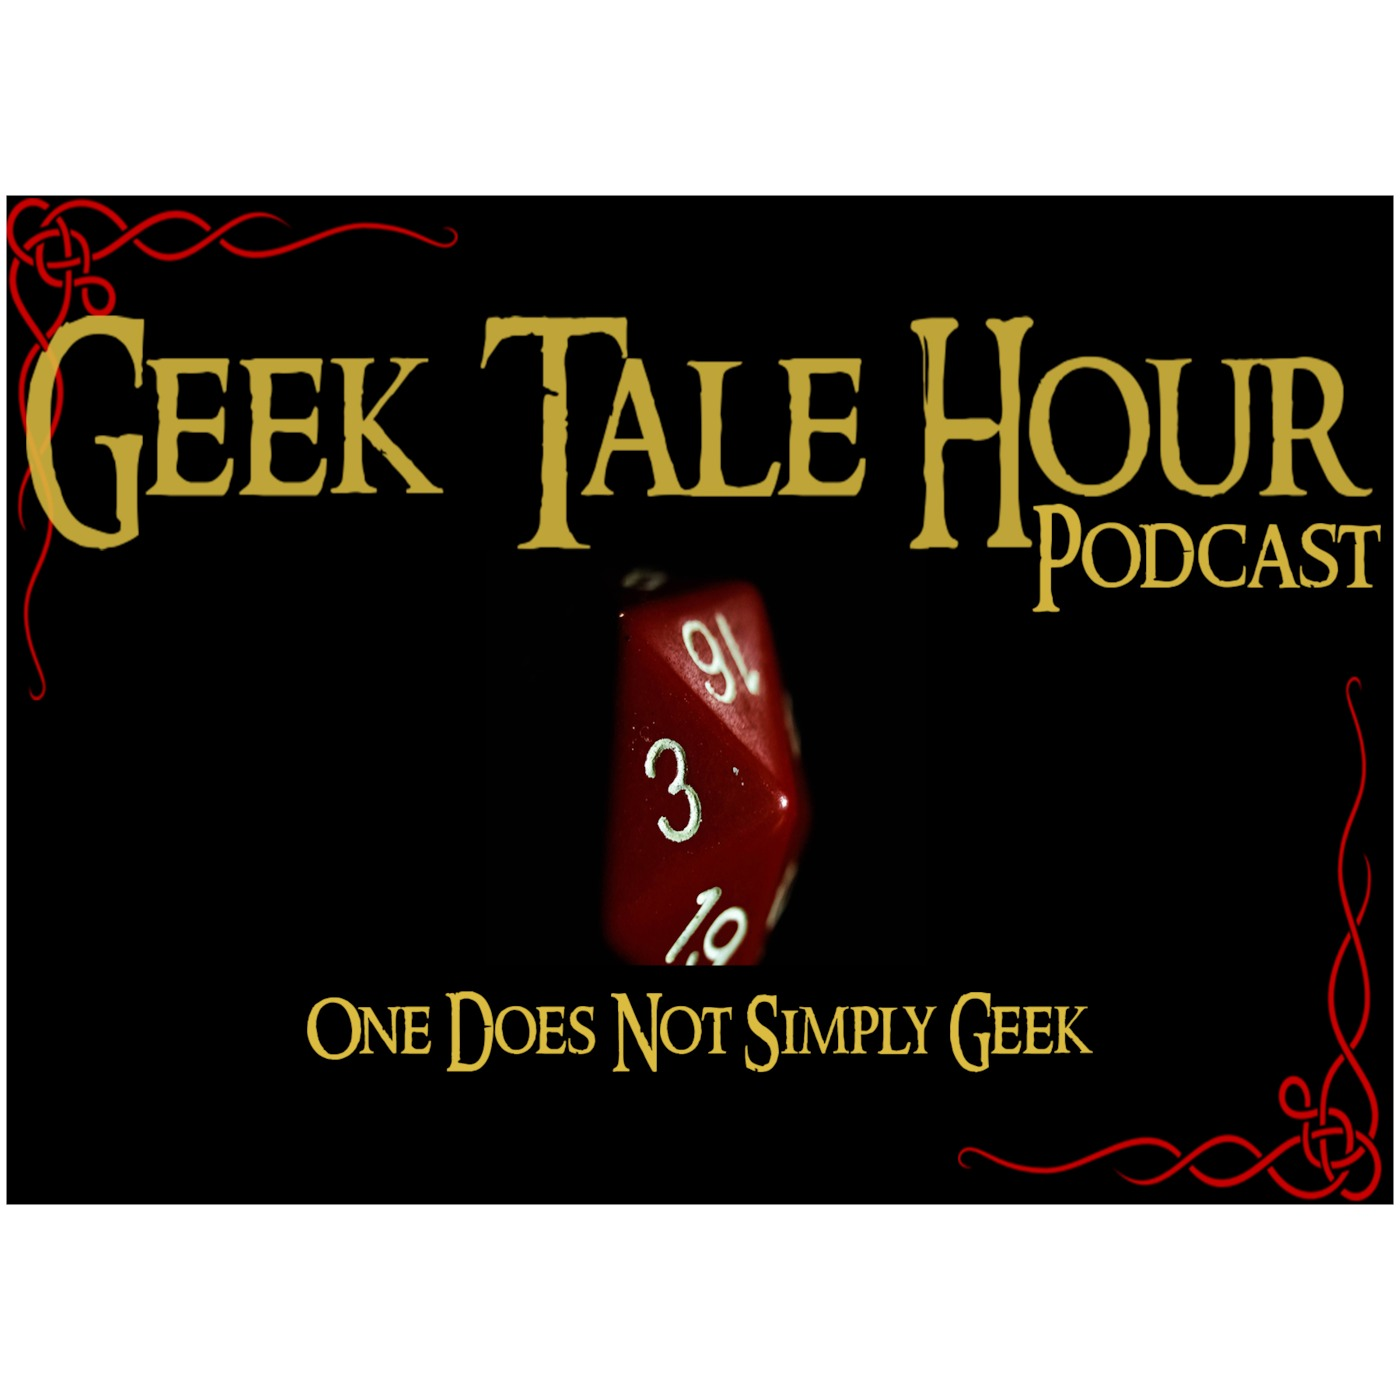 Geek Tale Hour Podcast's Podcast